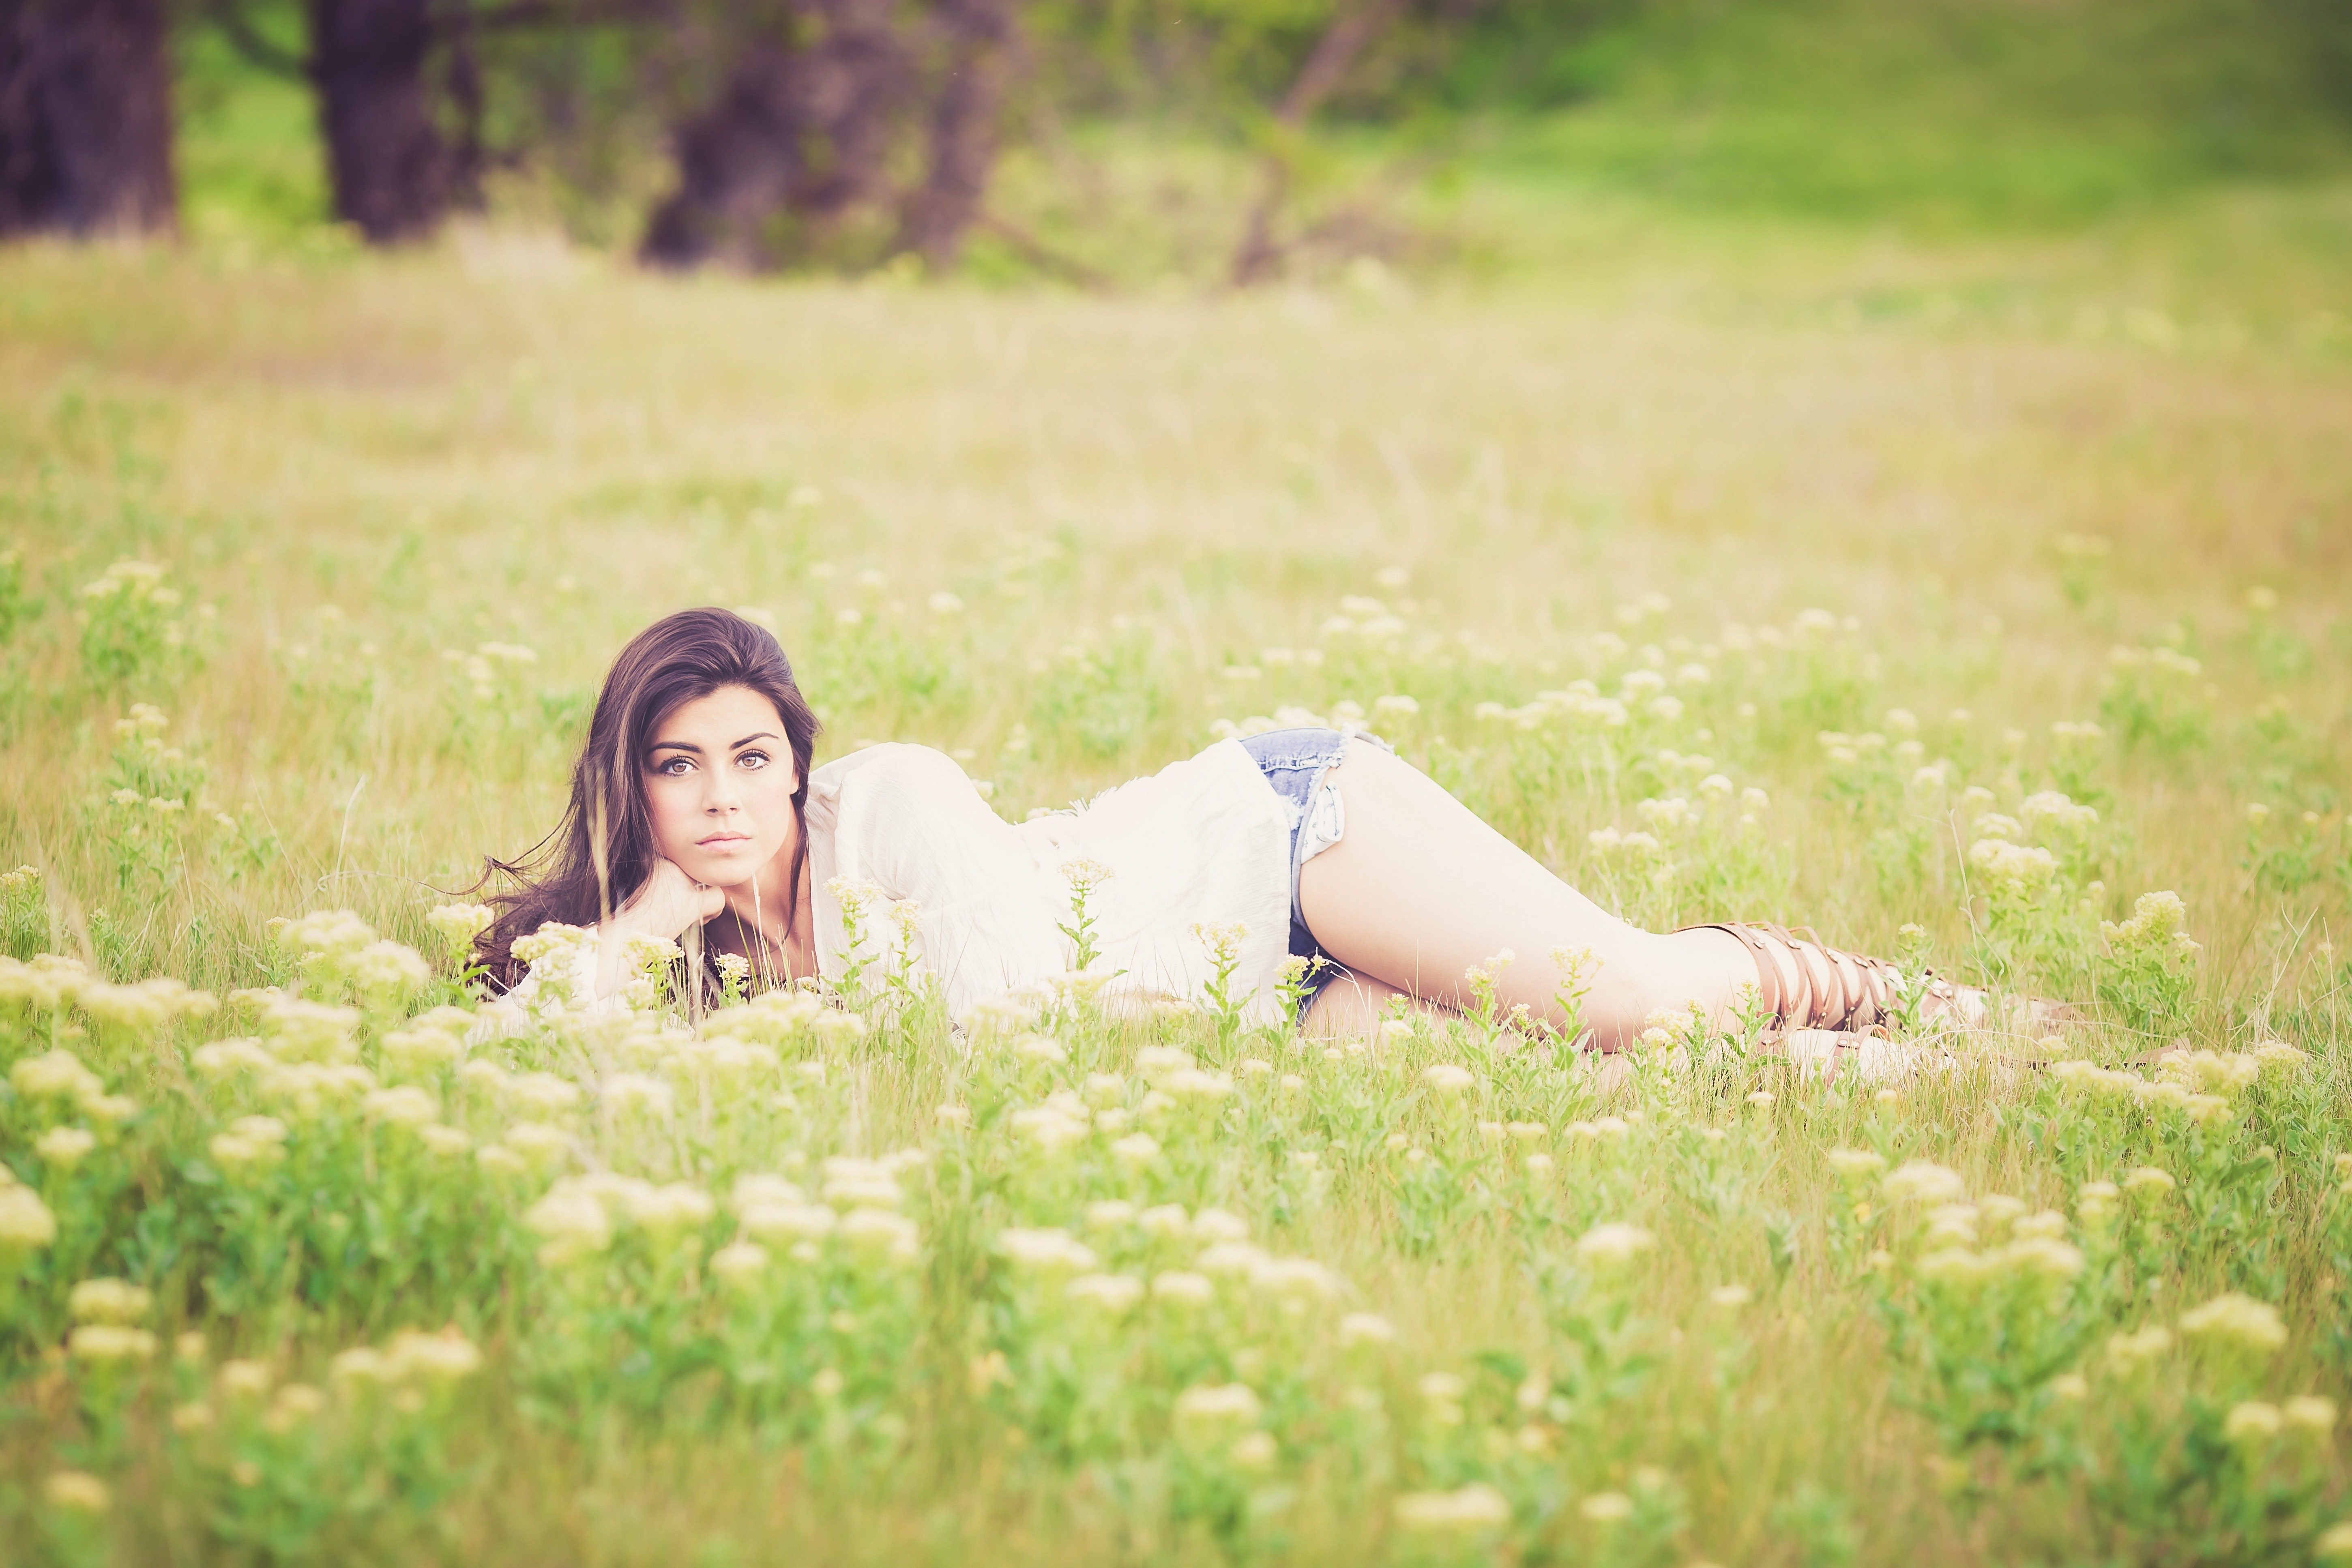 Woman Lying on Grass, Attractive, Outside, Park, Person, HQ Photo